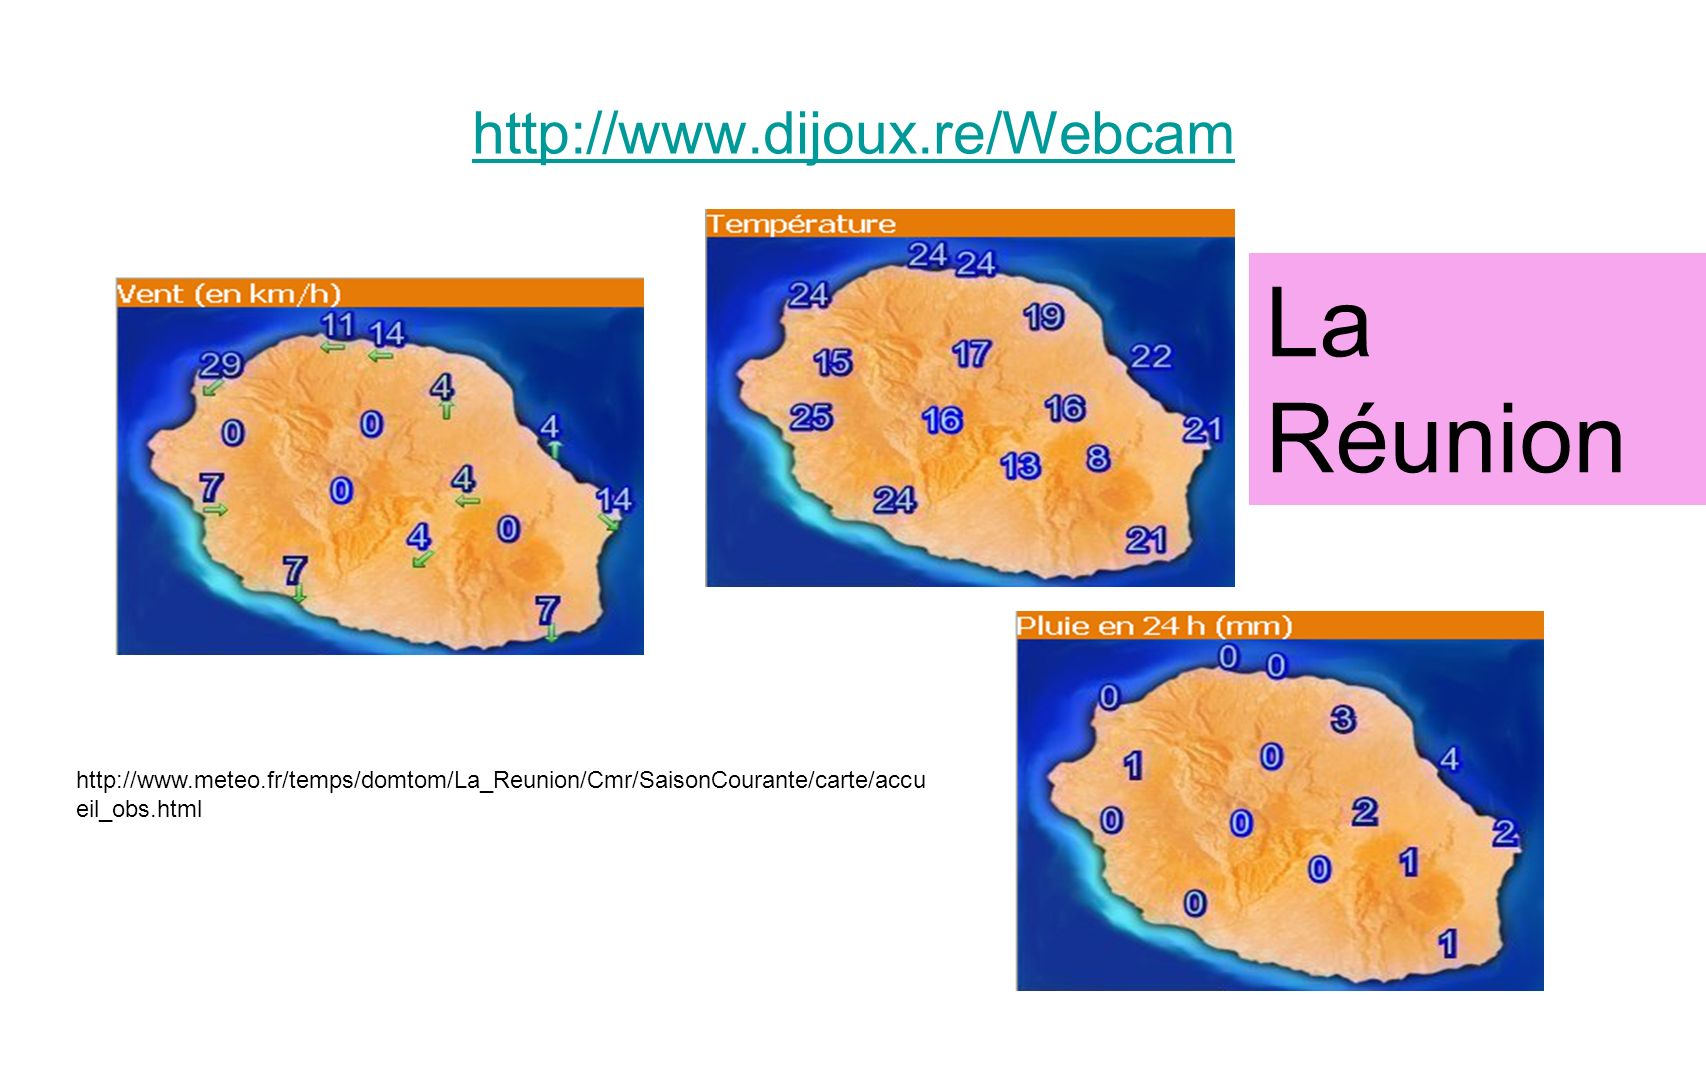 La Réunion http://www.dijoux.re/Webcam